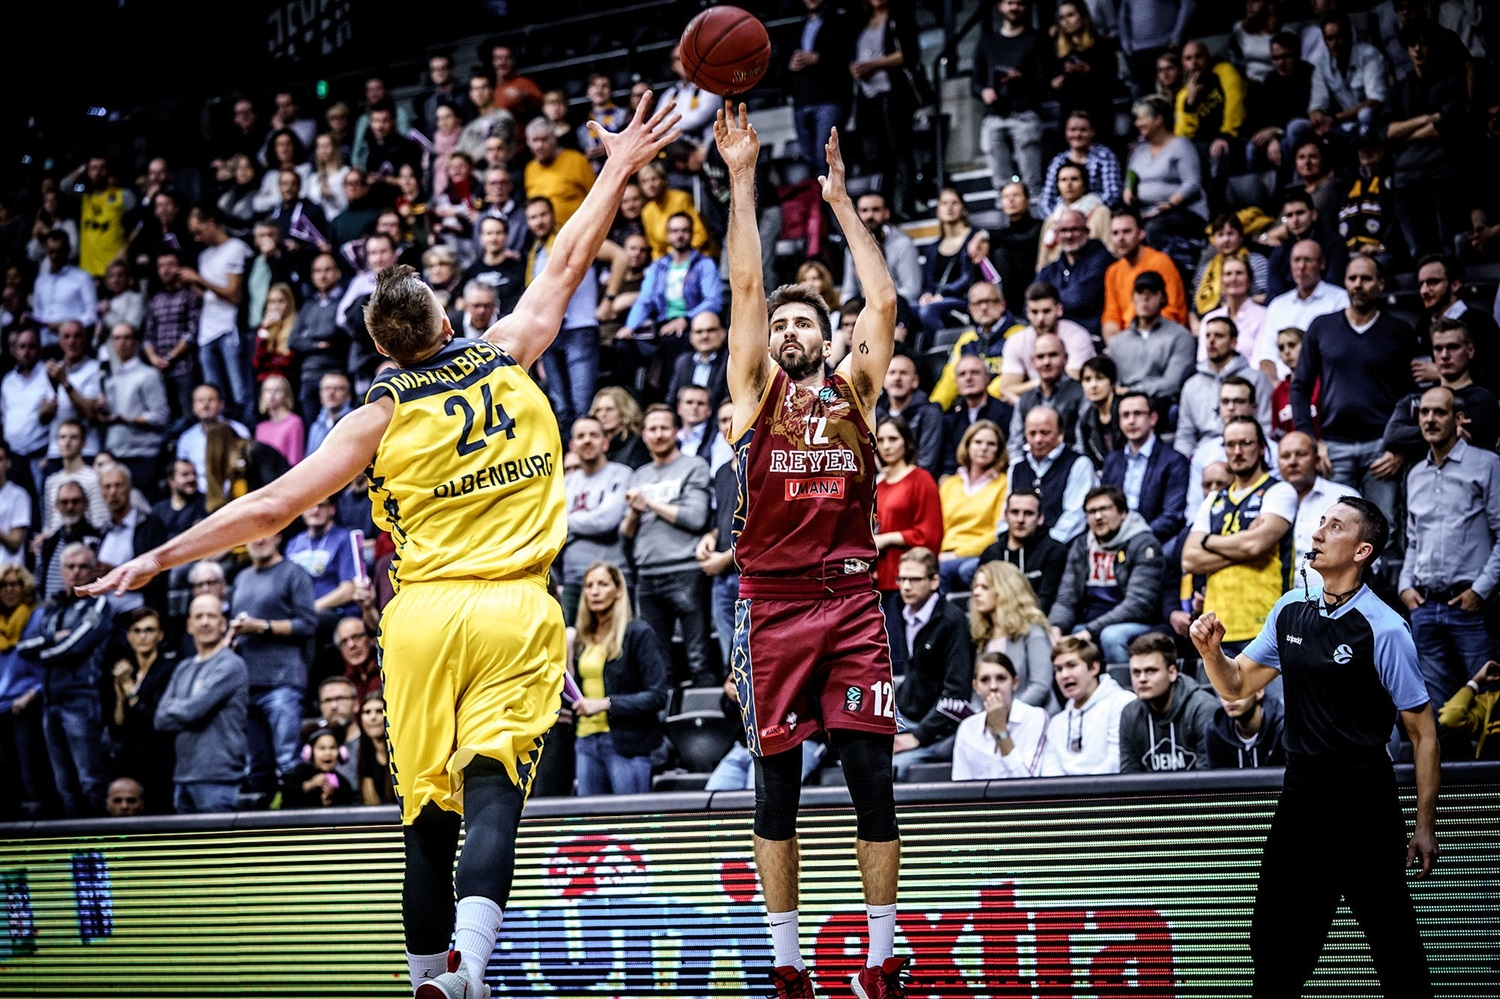 Ariel Filloy - Umana Reyer Venice (photo Ulf Duda - fotoduda.de) - EC19